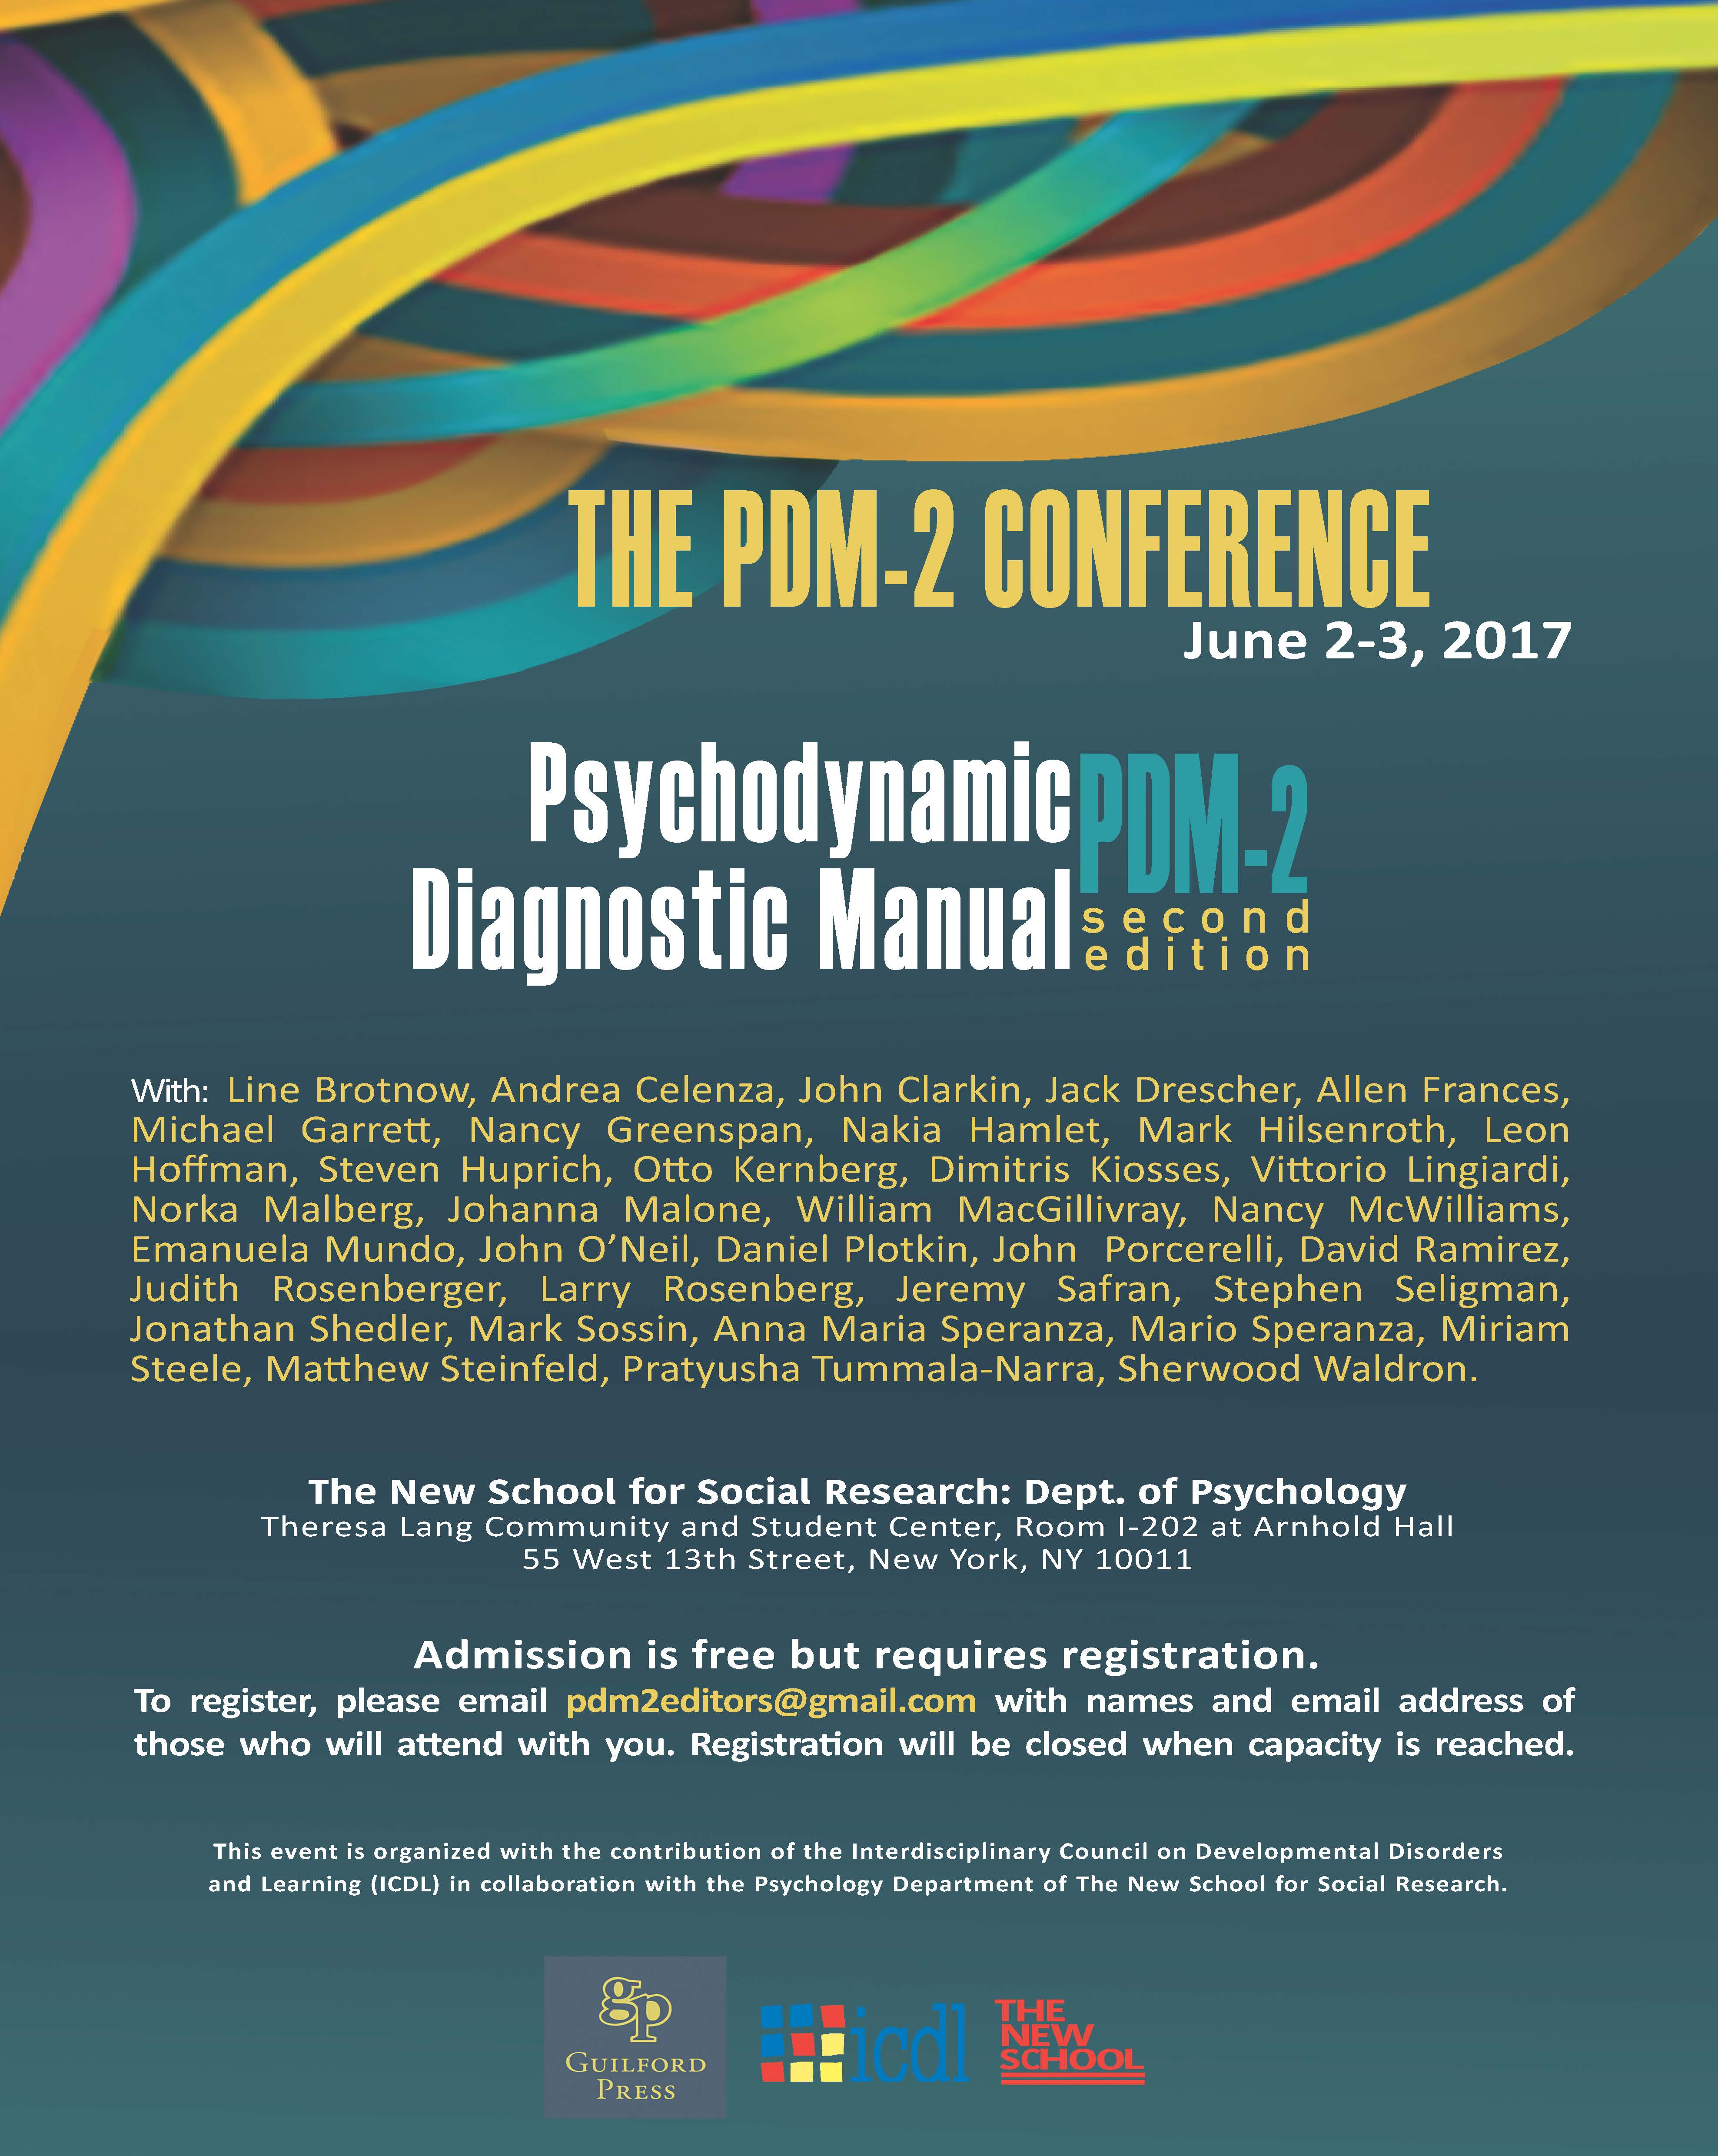 THE PDM-2 CONFERENCE